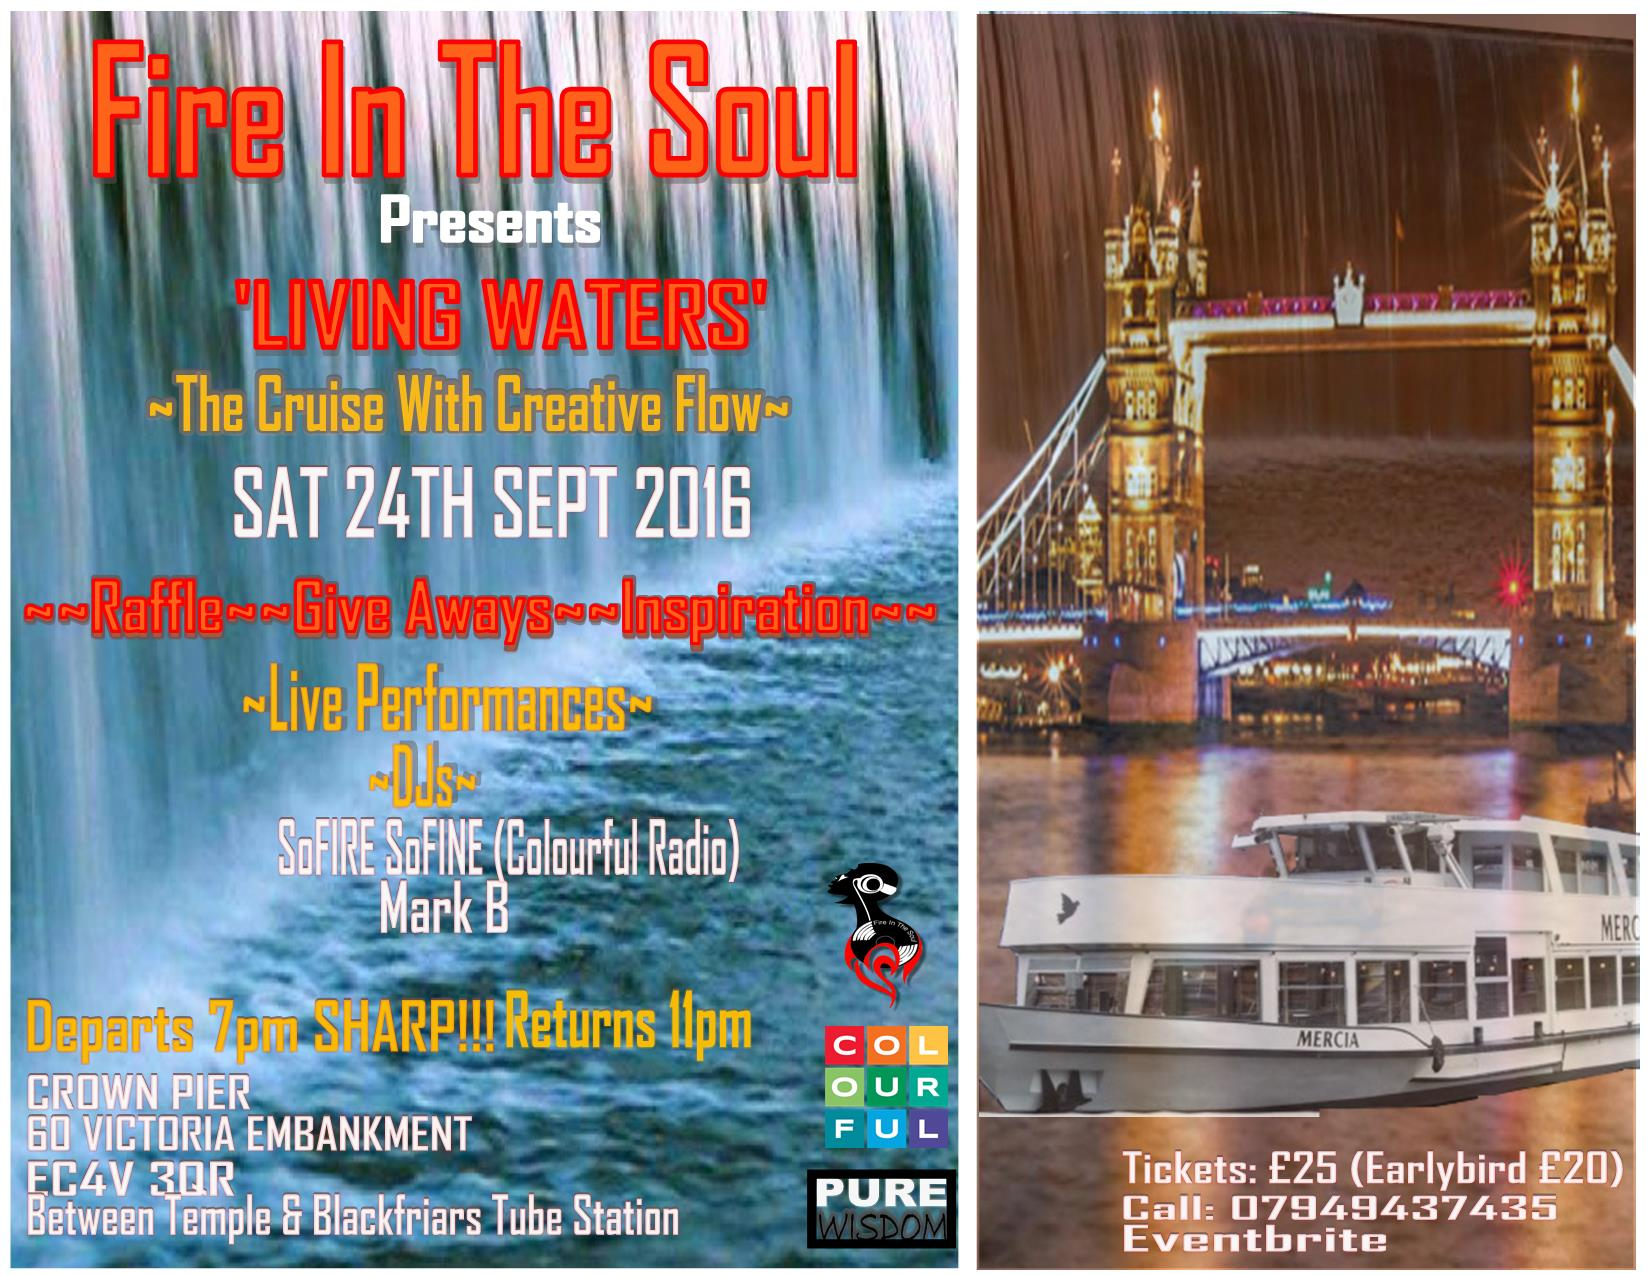 FIRE IN THE SOUL presents 'LIVING WATER' a Boat Cruise with Creative Flow!